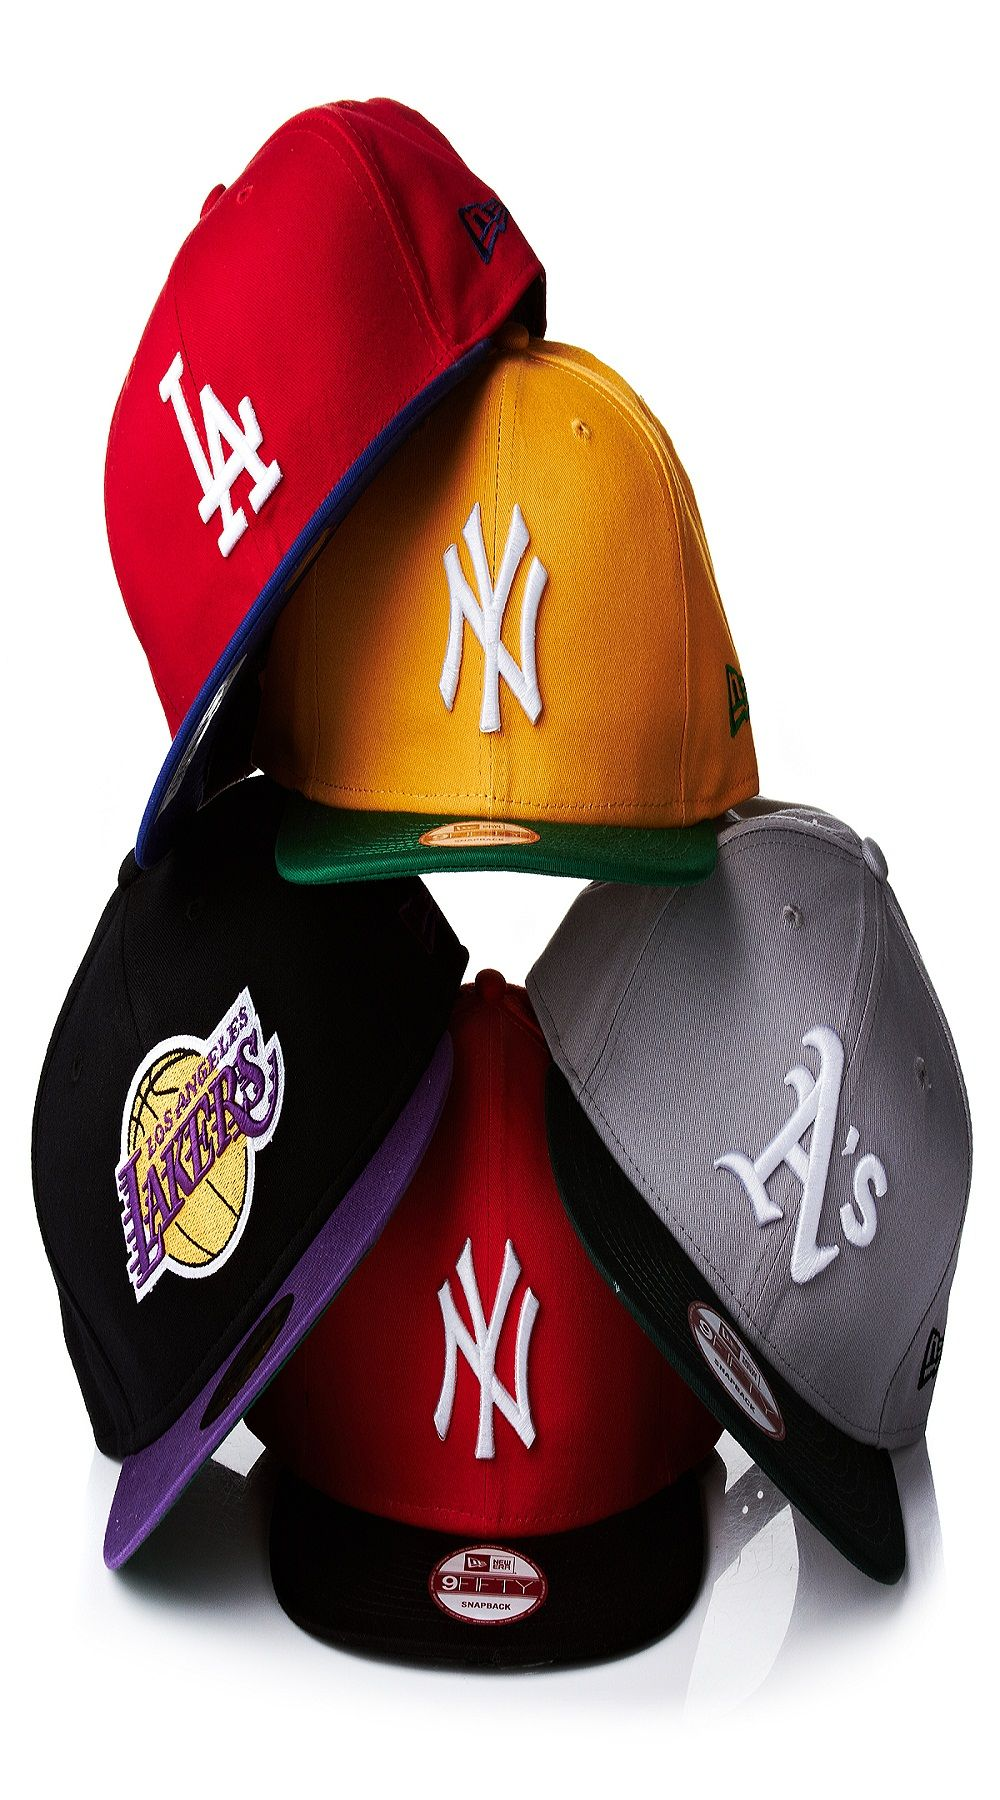 Crown S Custom Caps Are The Right Product For Any Event League Or Tournament Available In A Variety Of Colors Crown Can Du Embroidered Hats Hats Custom Caps